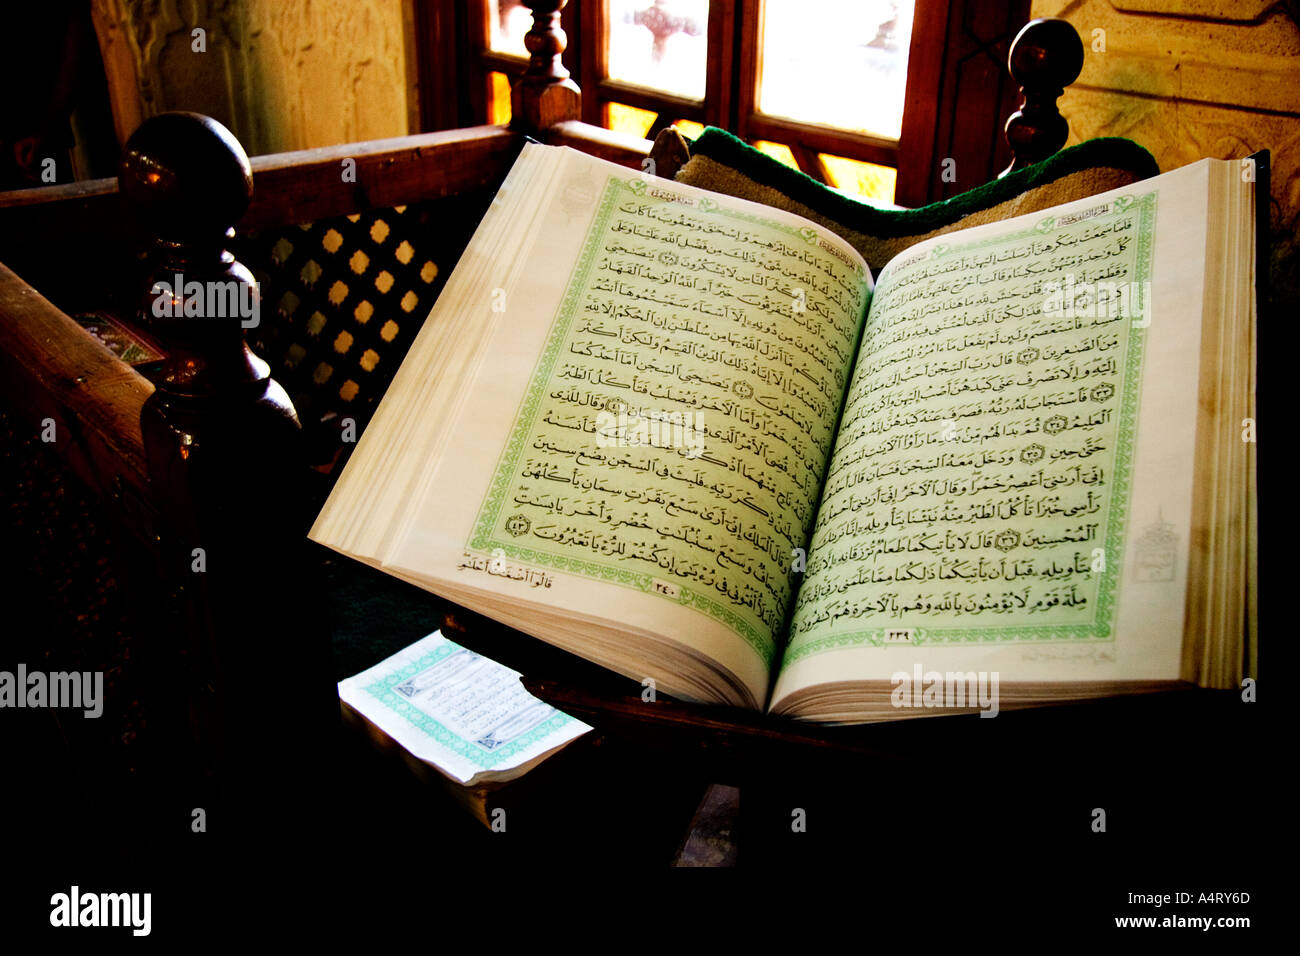 The koran the holy book of the moslems lies in a moske in the city of Aswan in the south of egypt - Stock Image